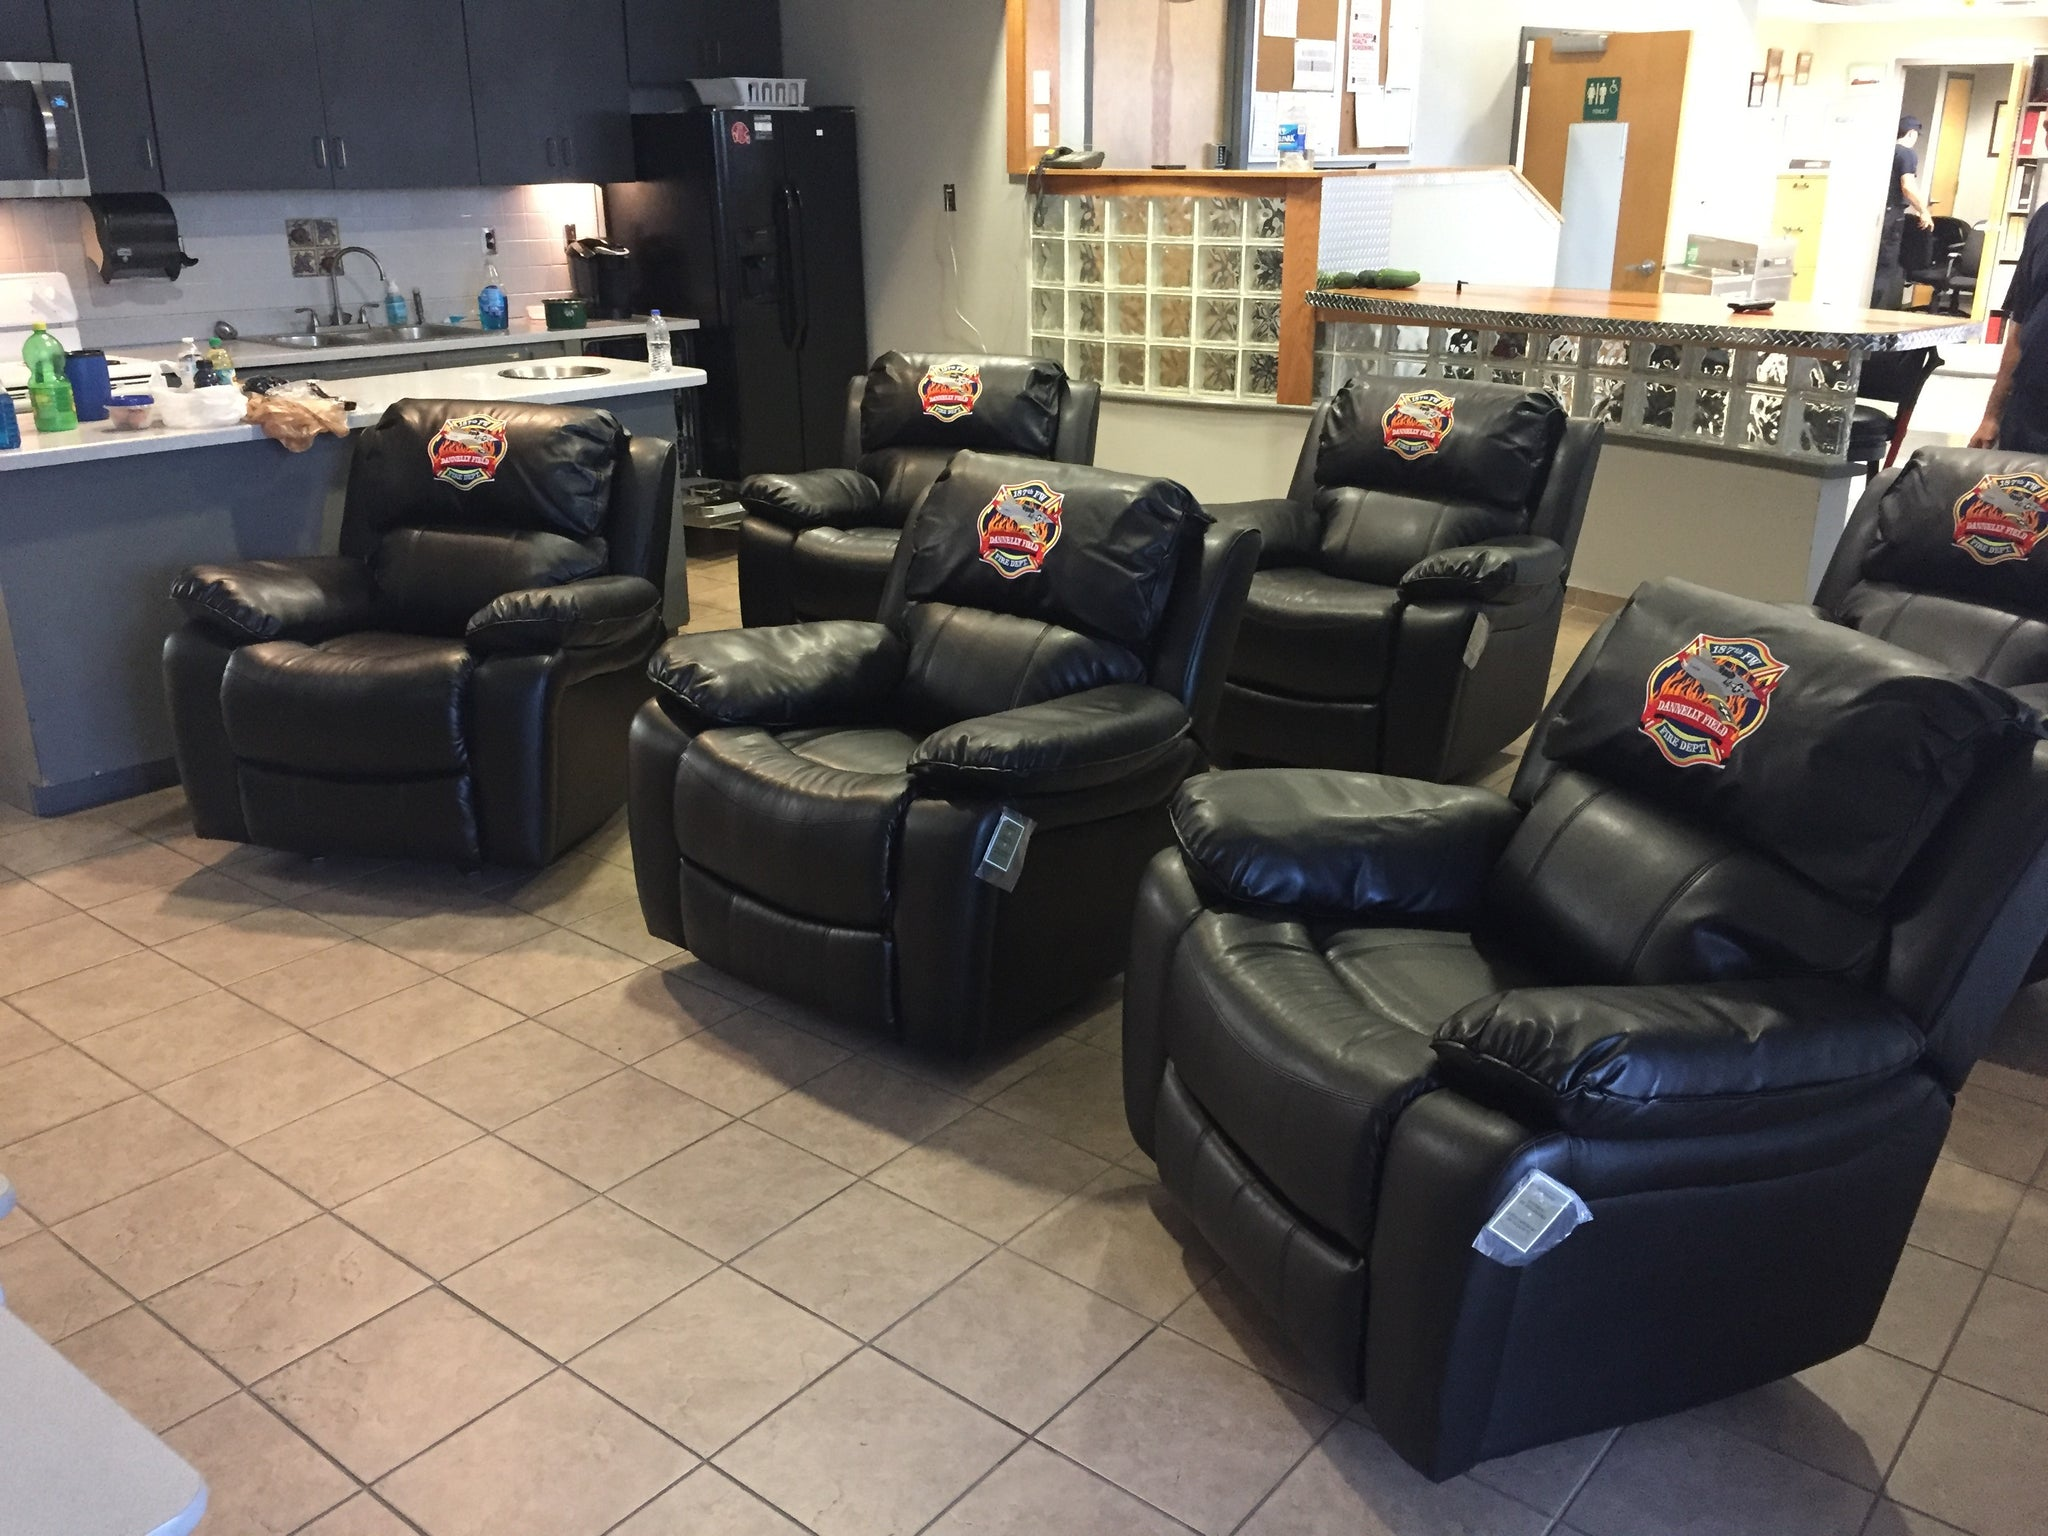 New Custom Embroidered Fire Station Recliners - 187th FW Fire Dept., AL